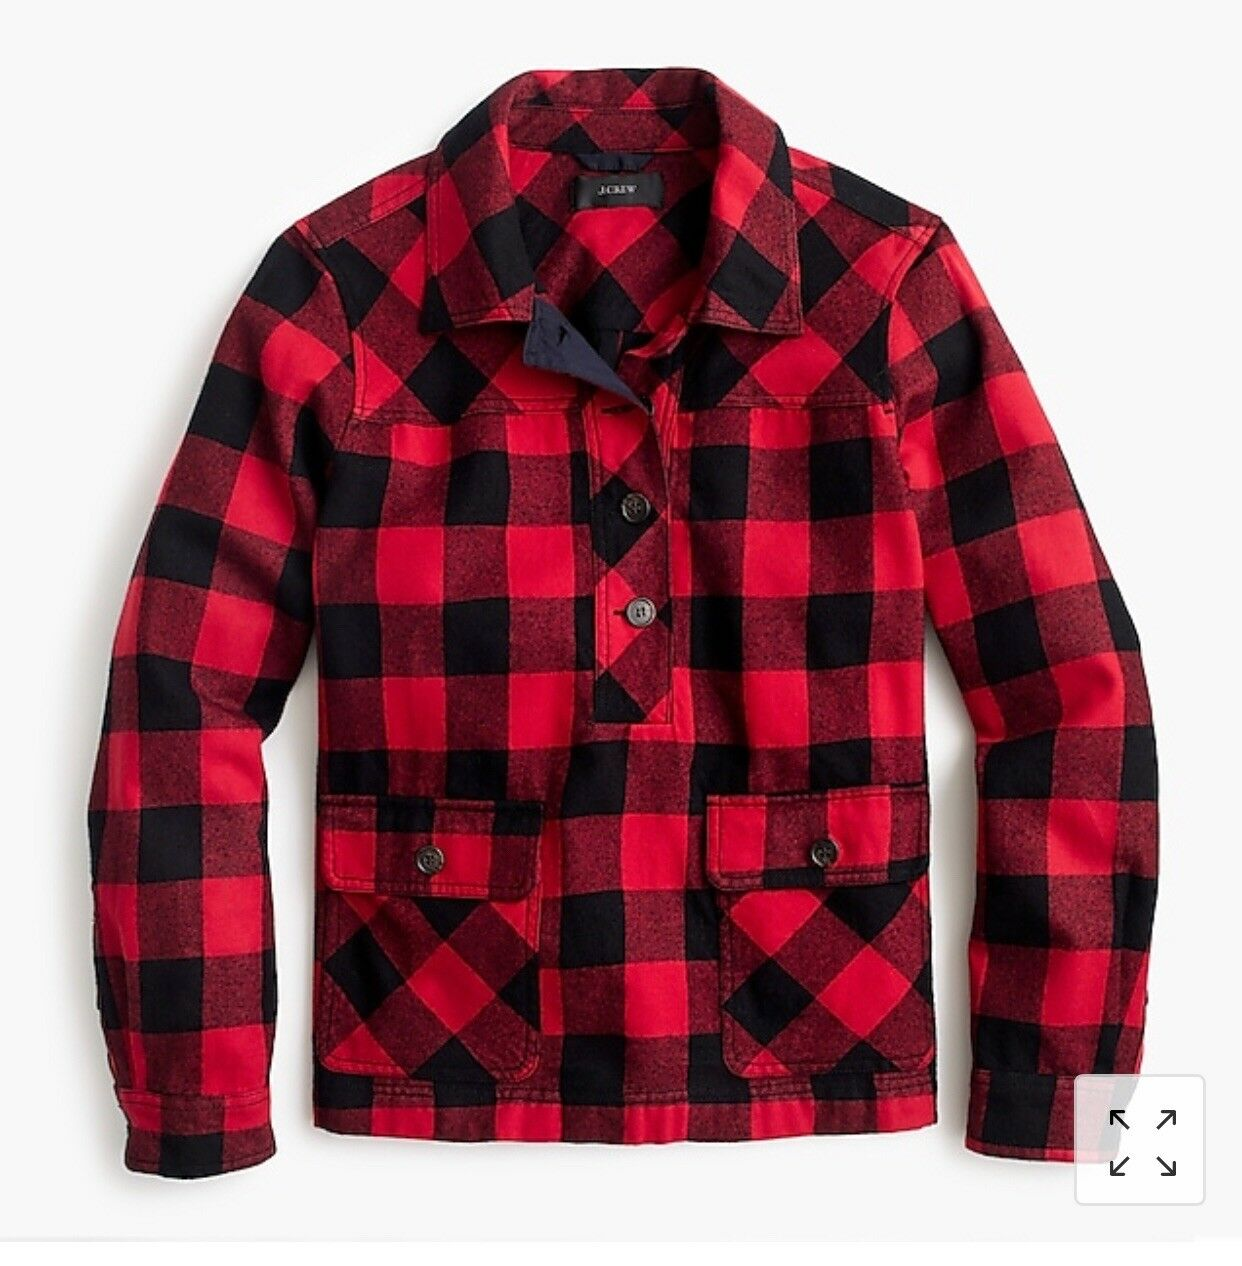 J.Crew Shirt-jacket in buffalo check , rot schwarz, XS, sold out